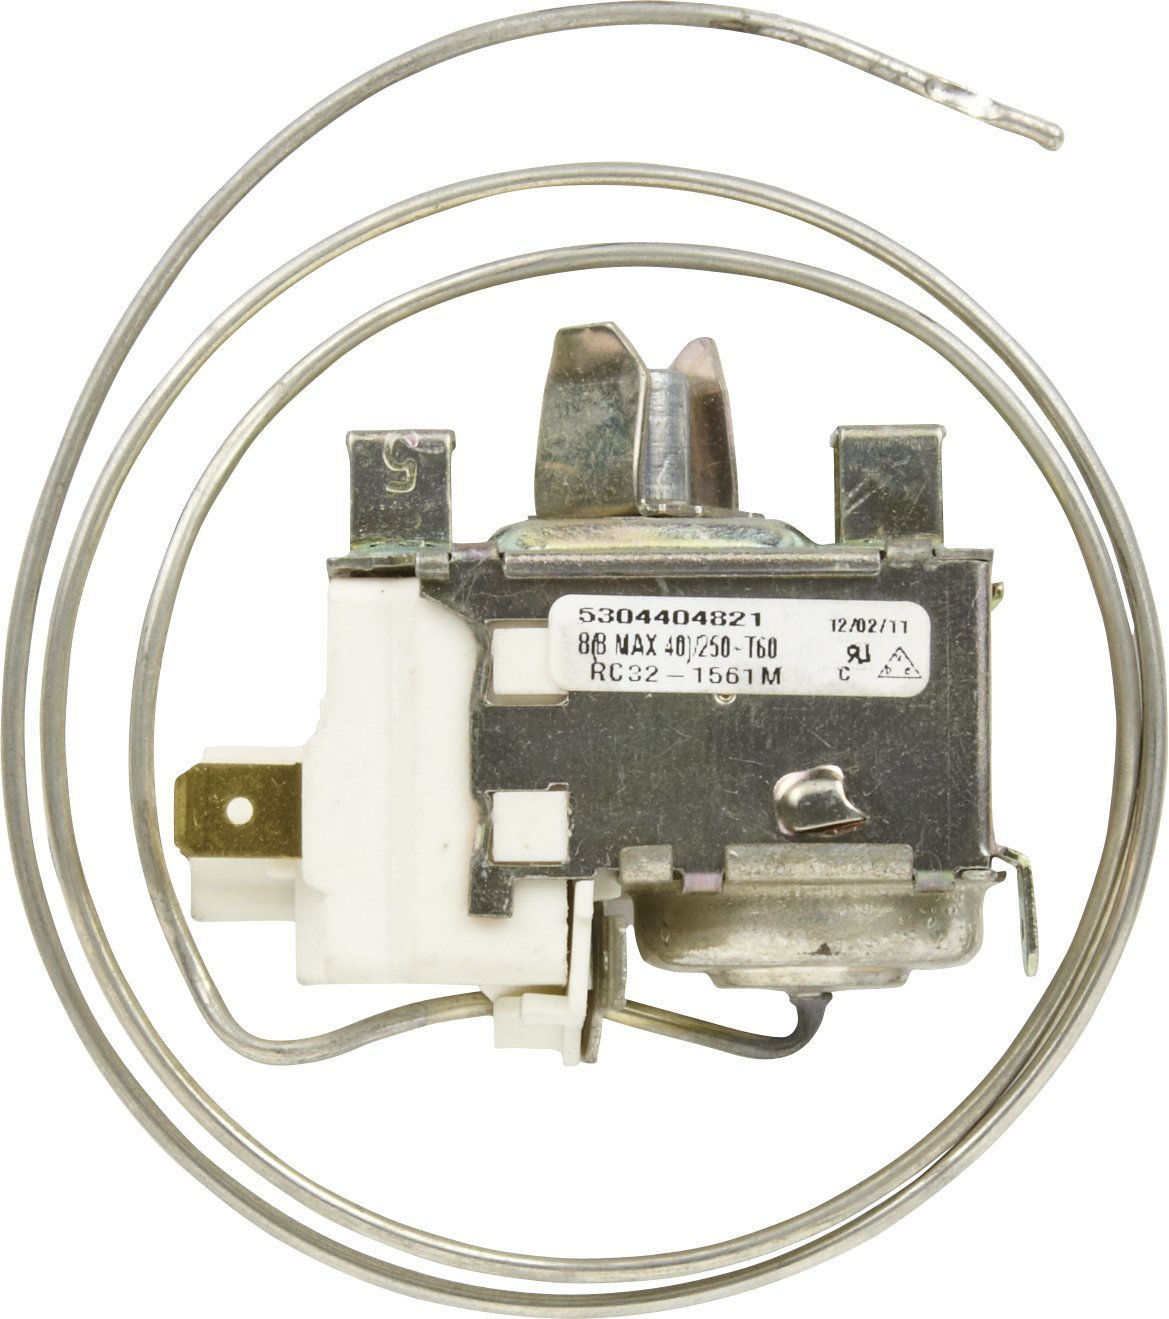 Frigidaire 5304404821 Thermostat